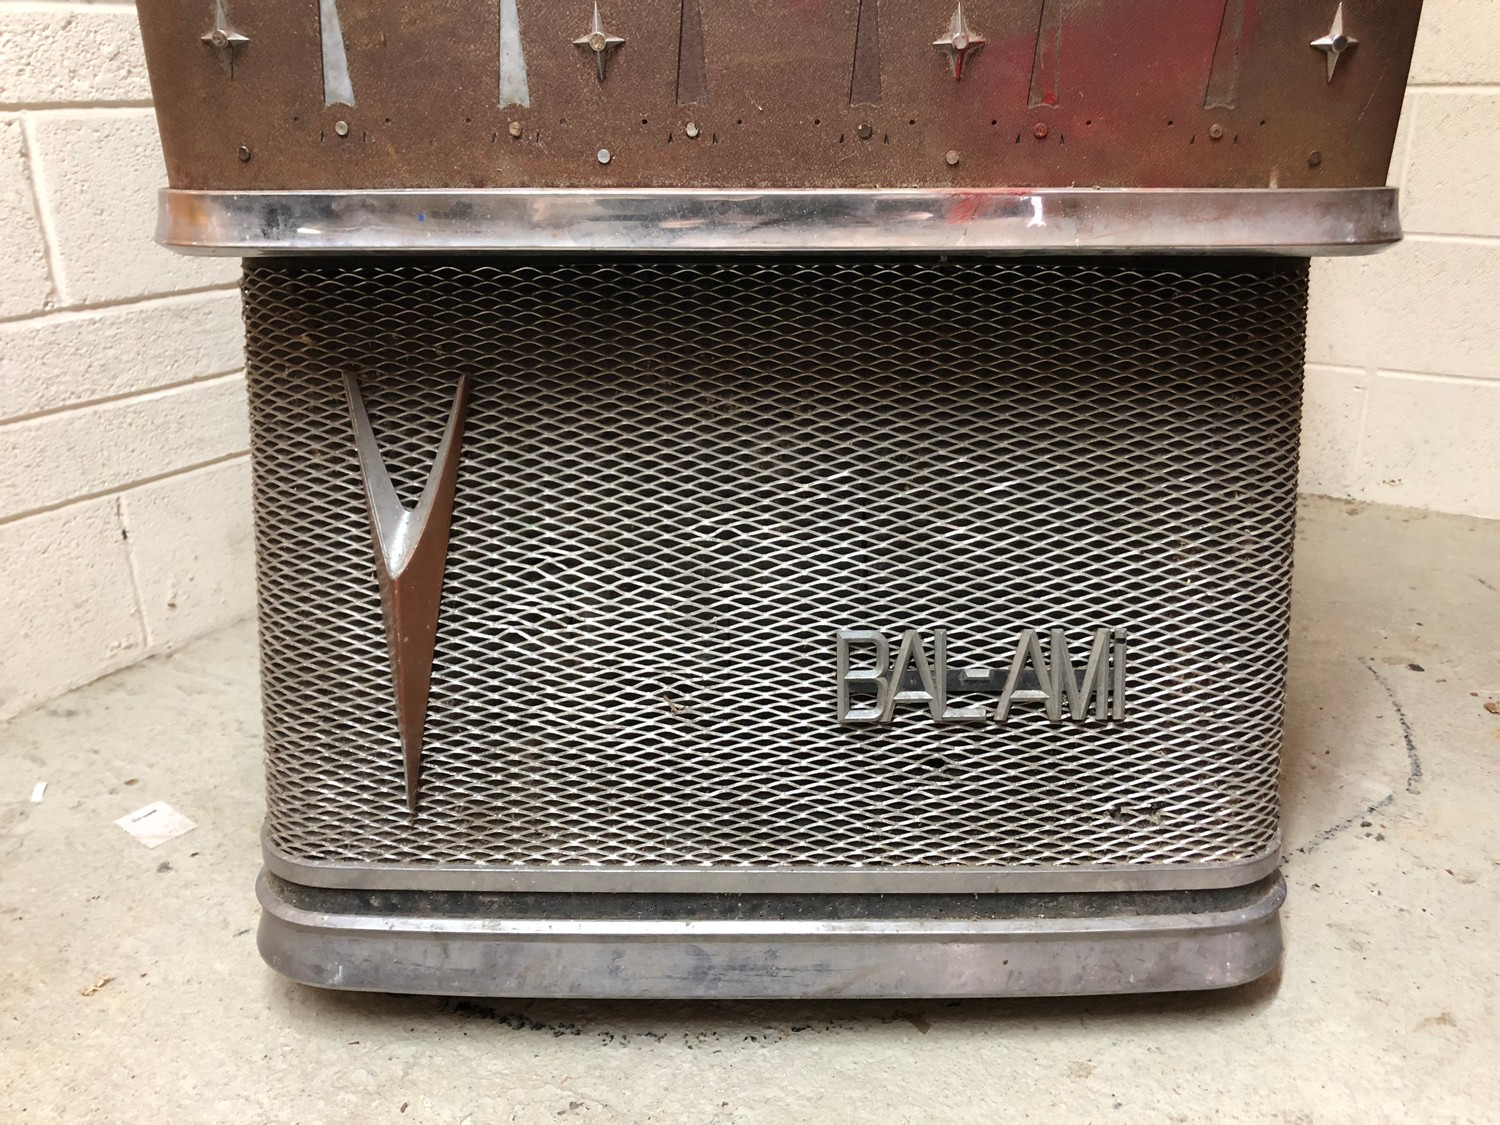 """Rare 1950s Bal-AMi 200 Jukebox in """"Barn Find"""" condition and in need of complete restoration, - Image 5 of 27"""